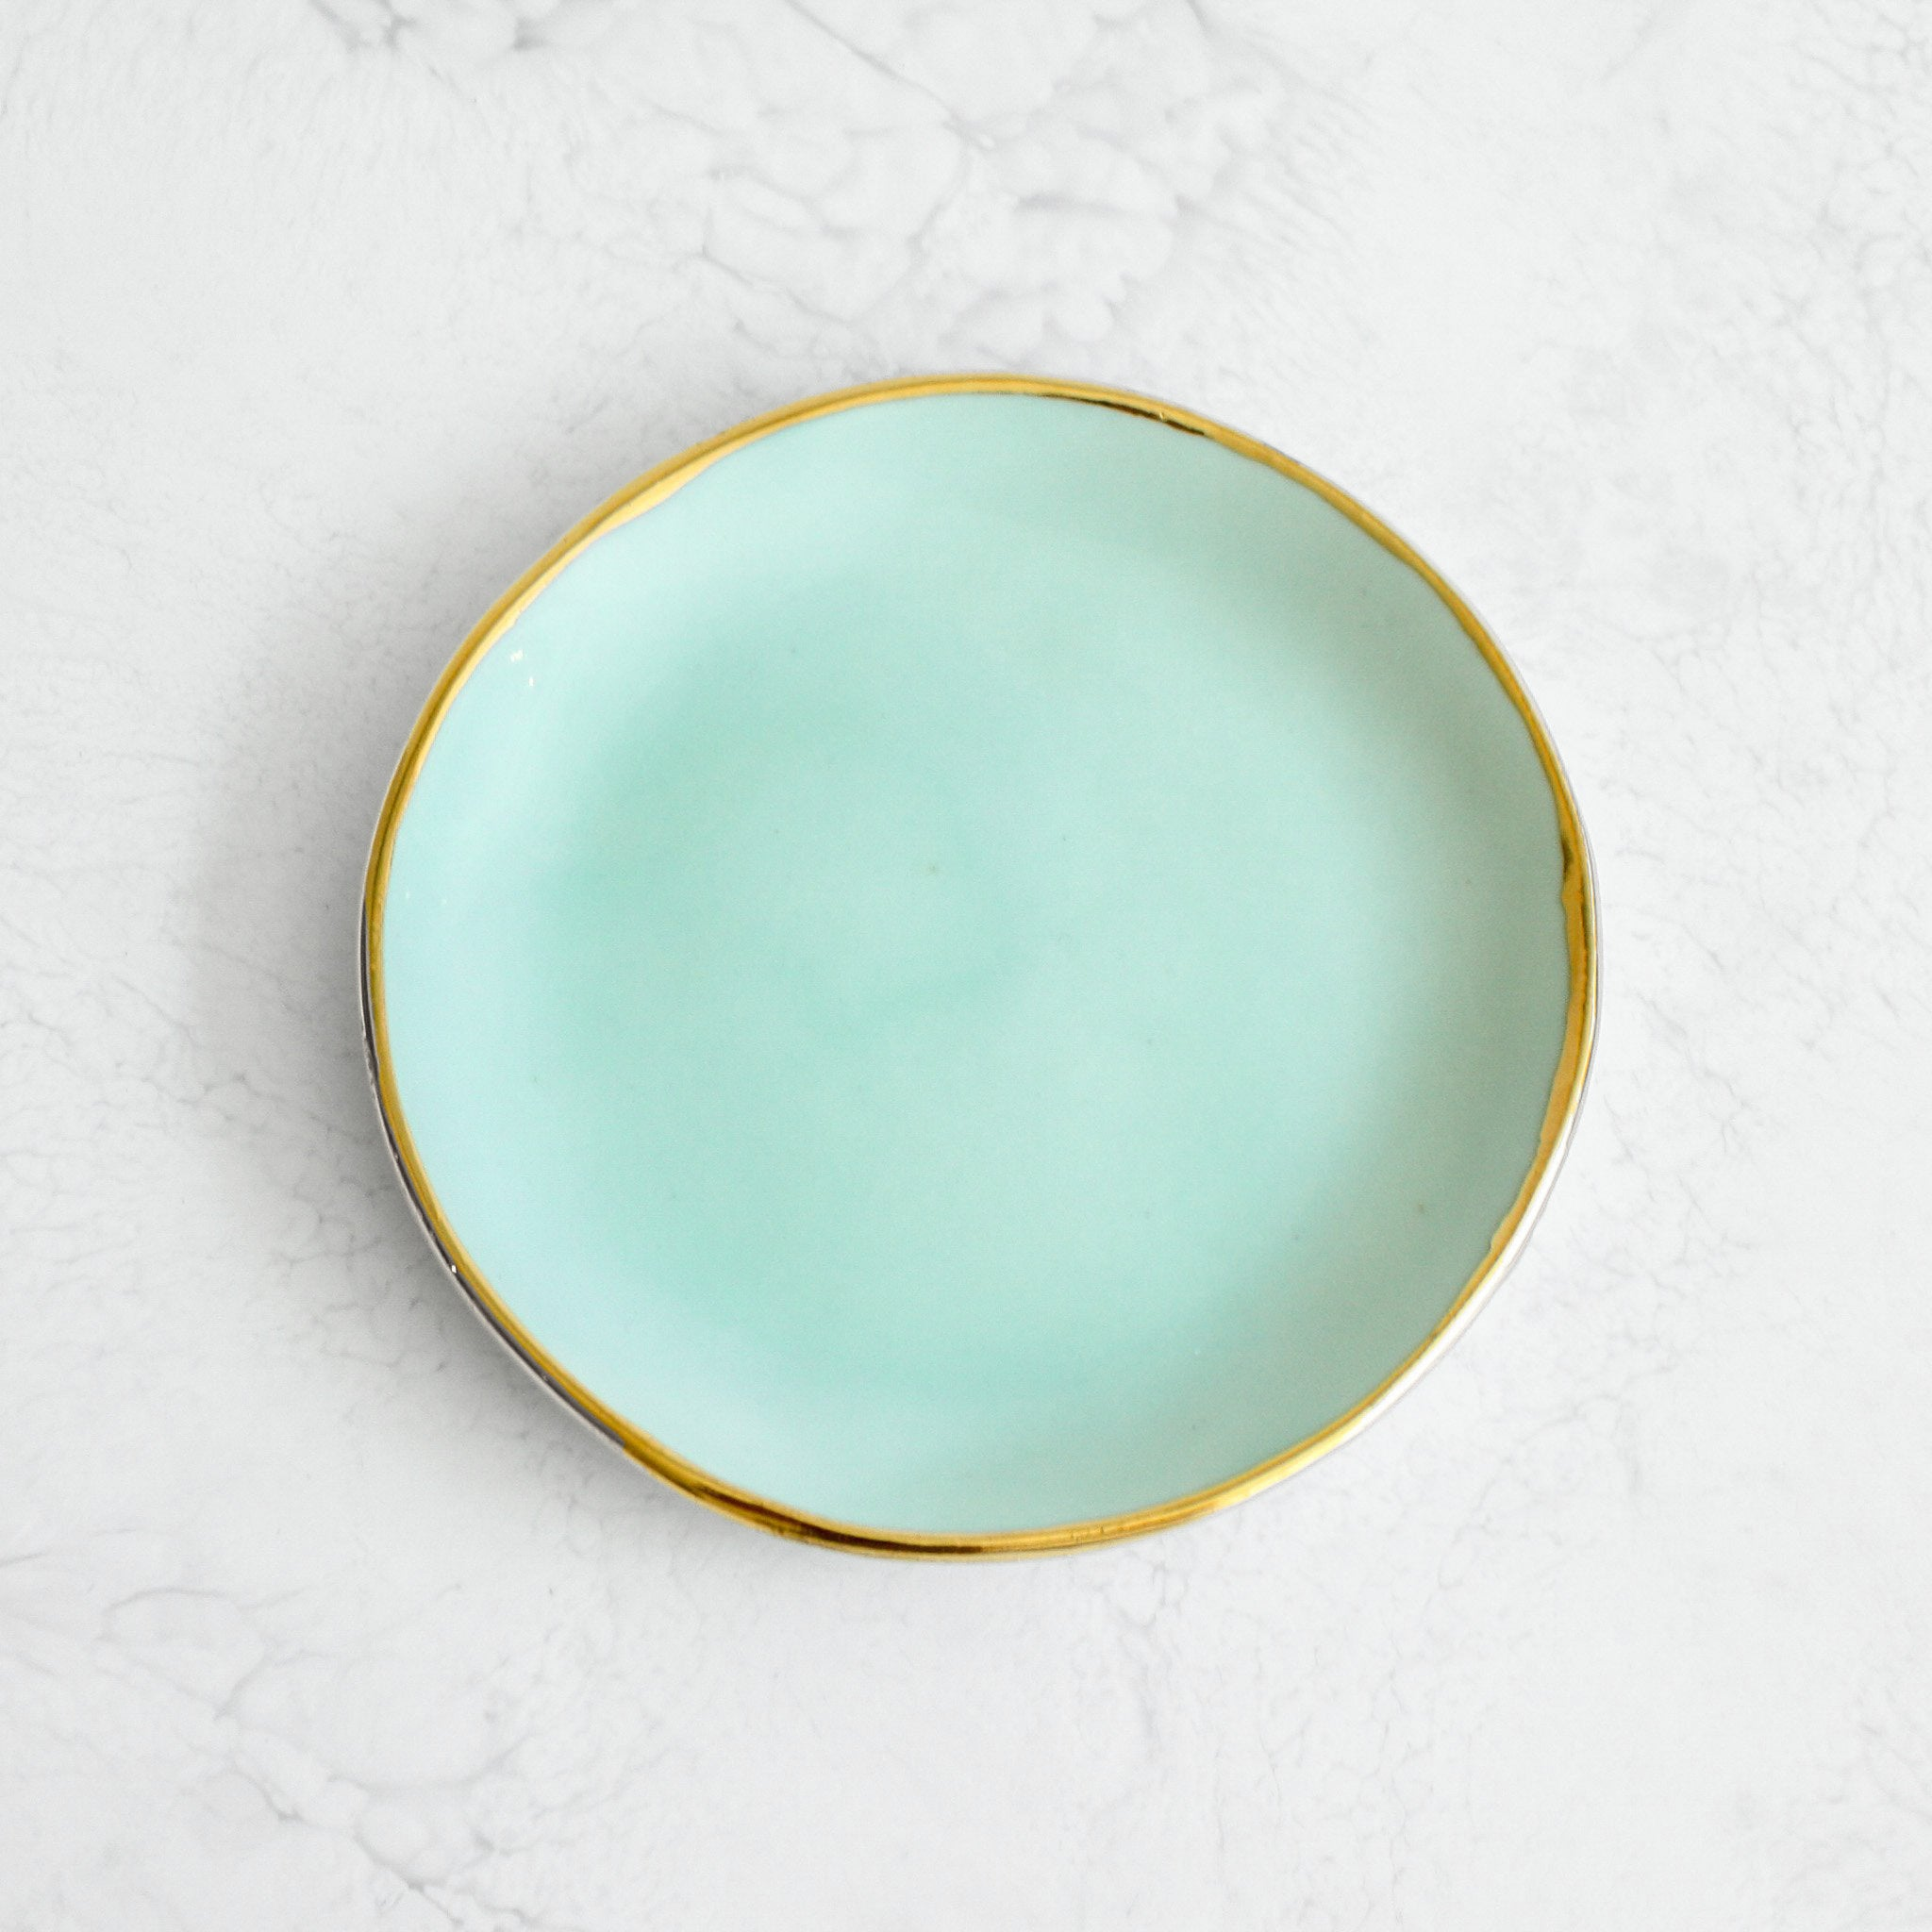 Gold Rim Ring Dishes handmade in a glazed porcelain with a genuine gold rim in mint green by Suite One Studio